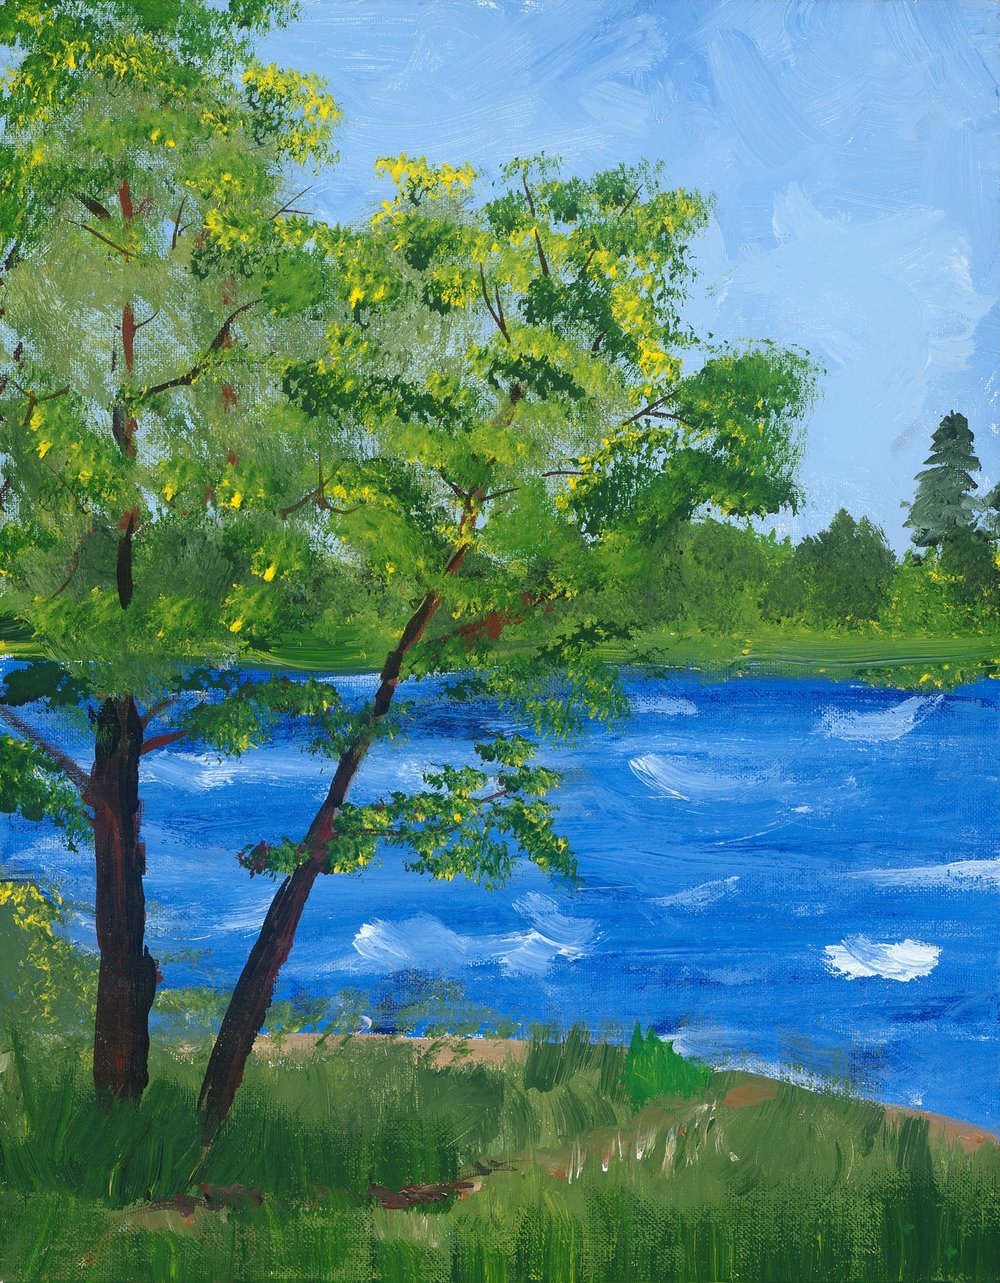 Acrylic Trees by the Water - Reprint Available For Purchase